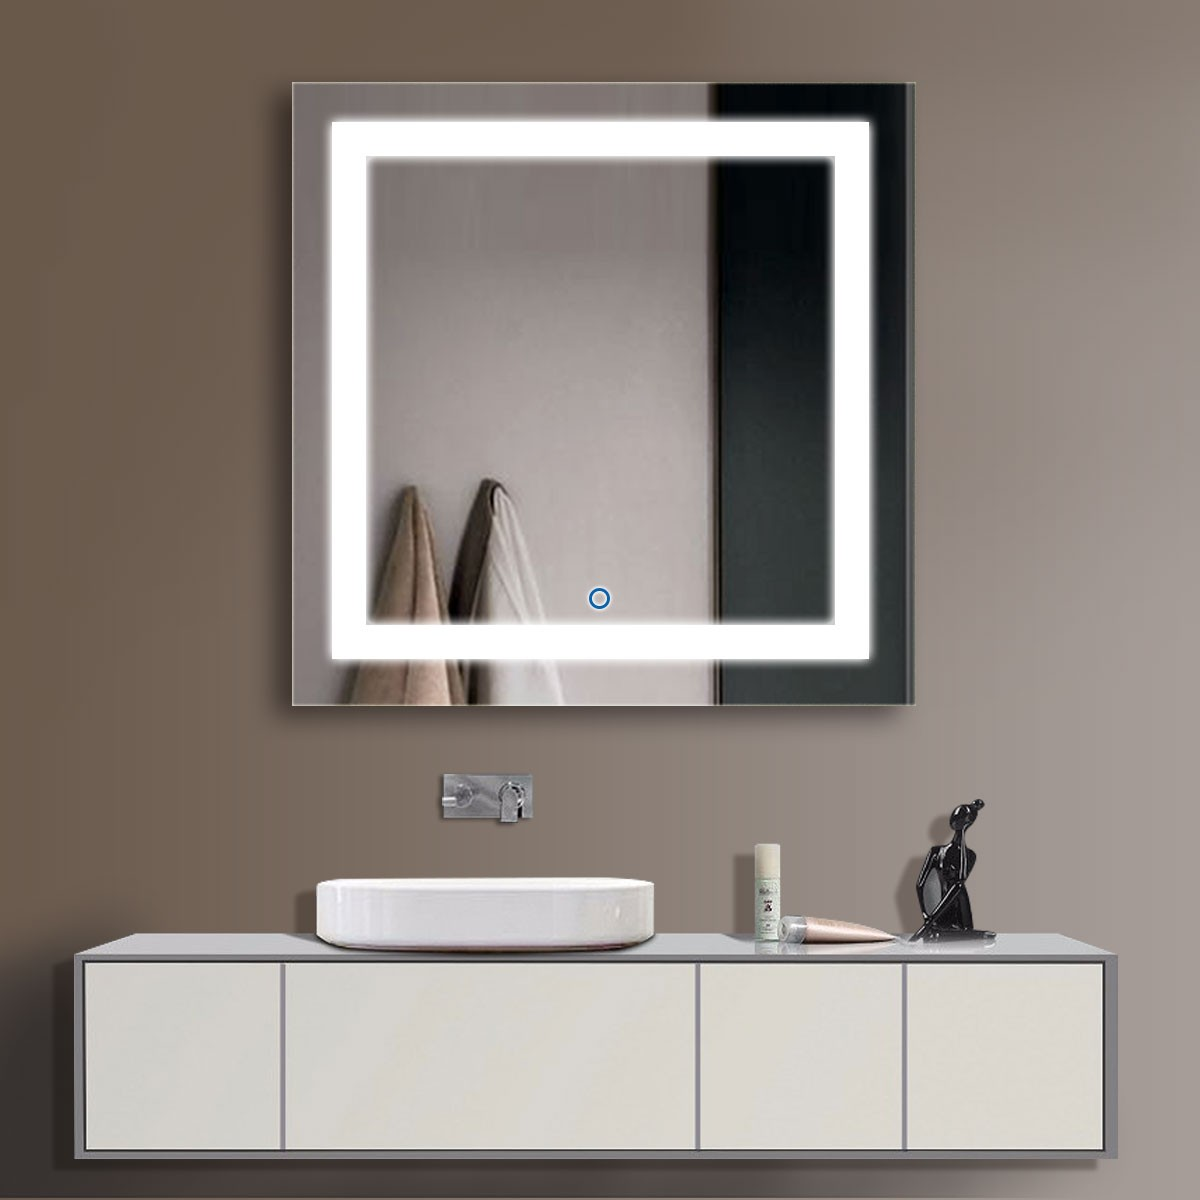 36 x 36 In and Vertical LED Bathroom Mirror Touch Button